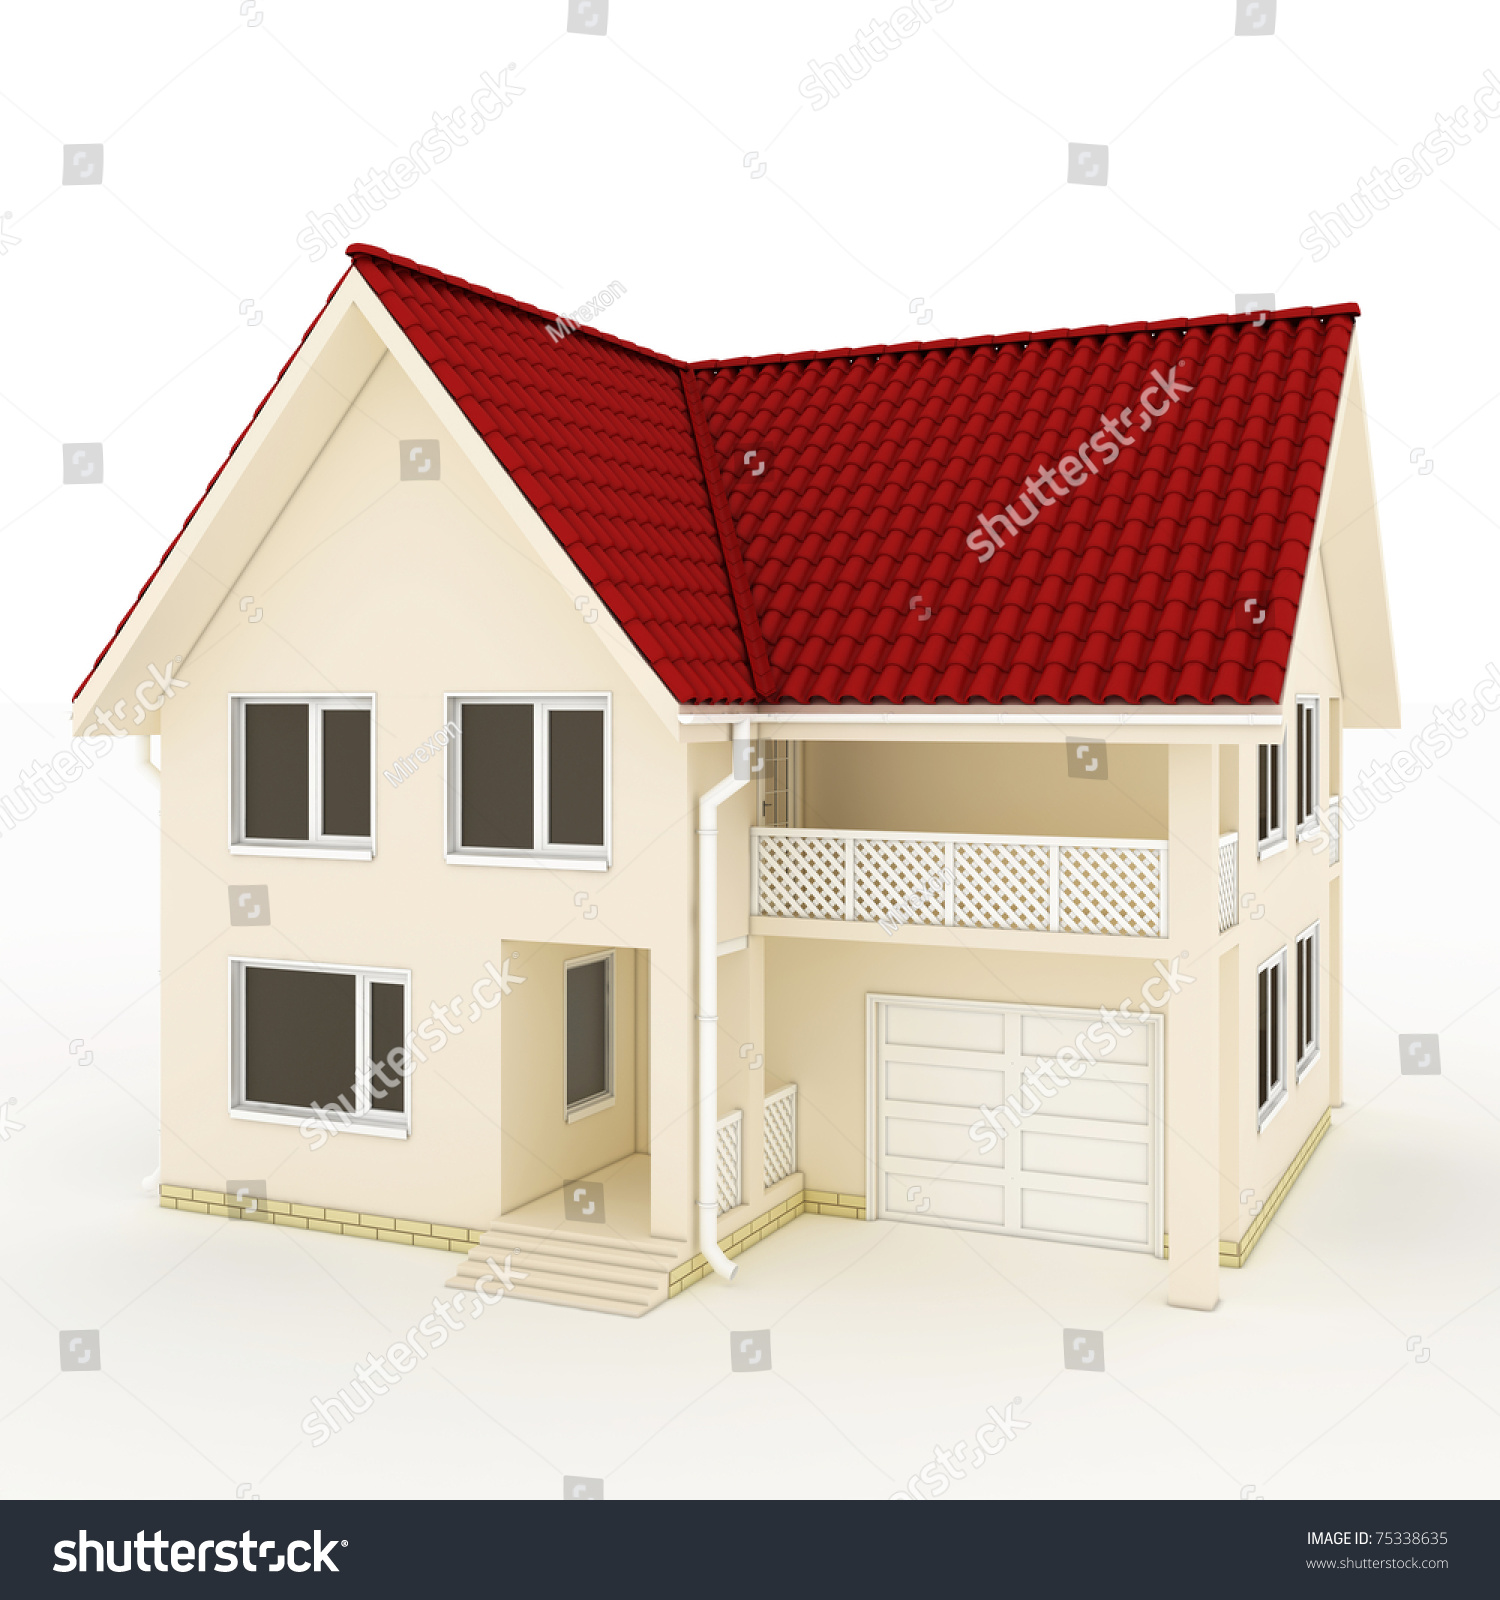 Twostory house red roof balcony garage stock illustration 75338635 shutterstock - Houses with attic and balconies ...